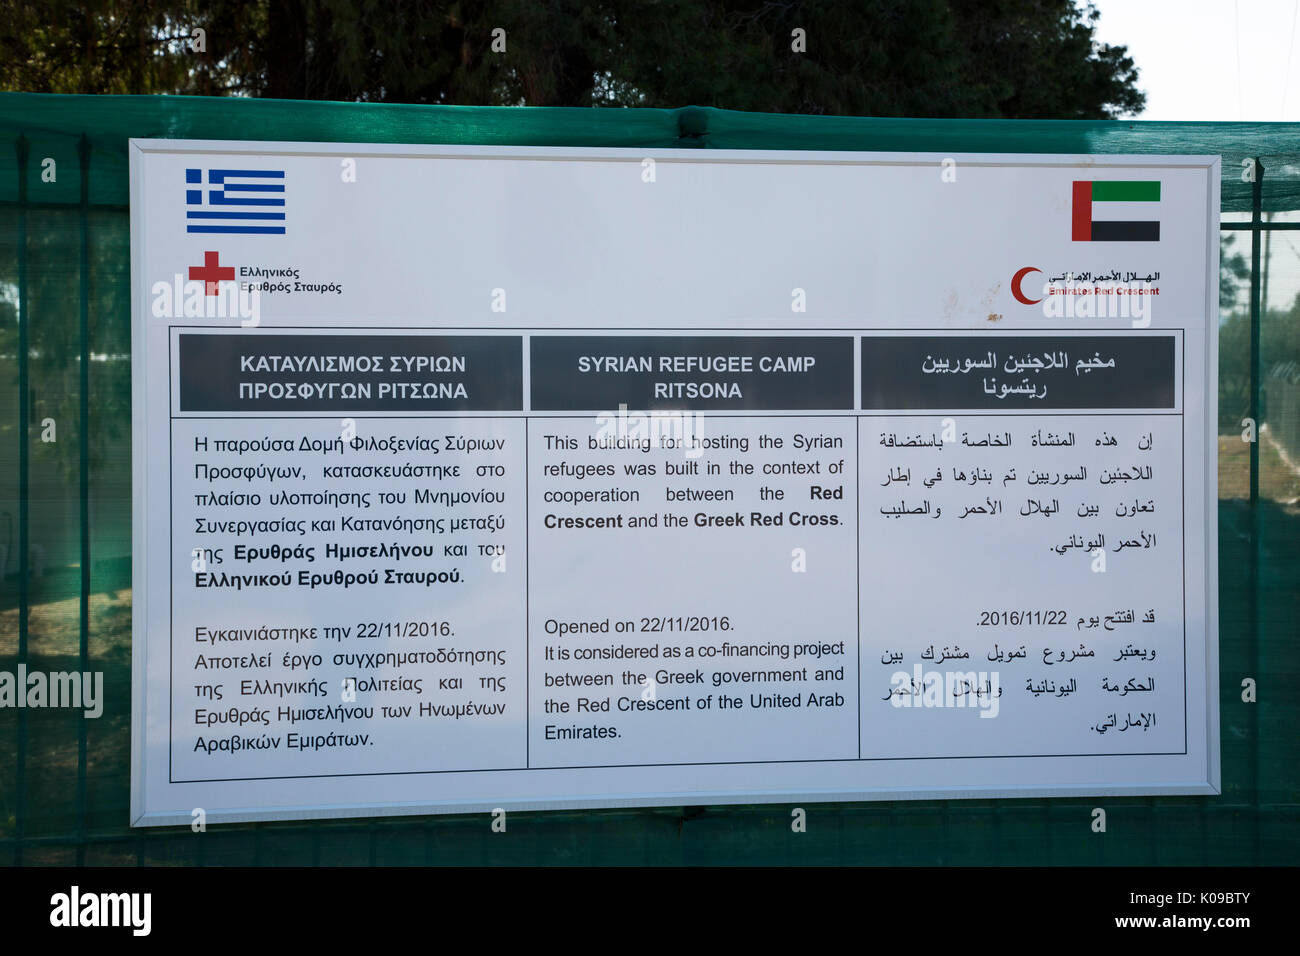 A sign at the entrance to Ritsona Refugee Camp in Greek, English and Arabic tells of cooperation of Greek Red Cross and Emirates Red Crescent. - Stock Image